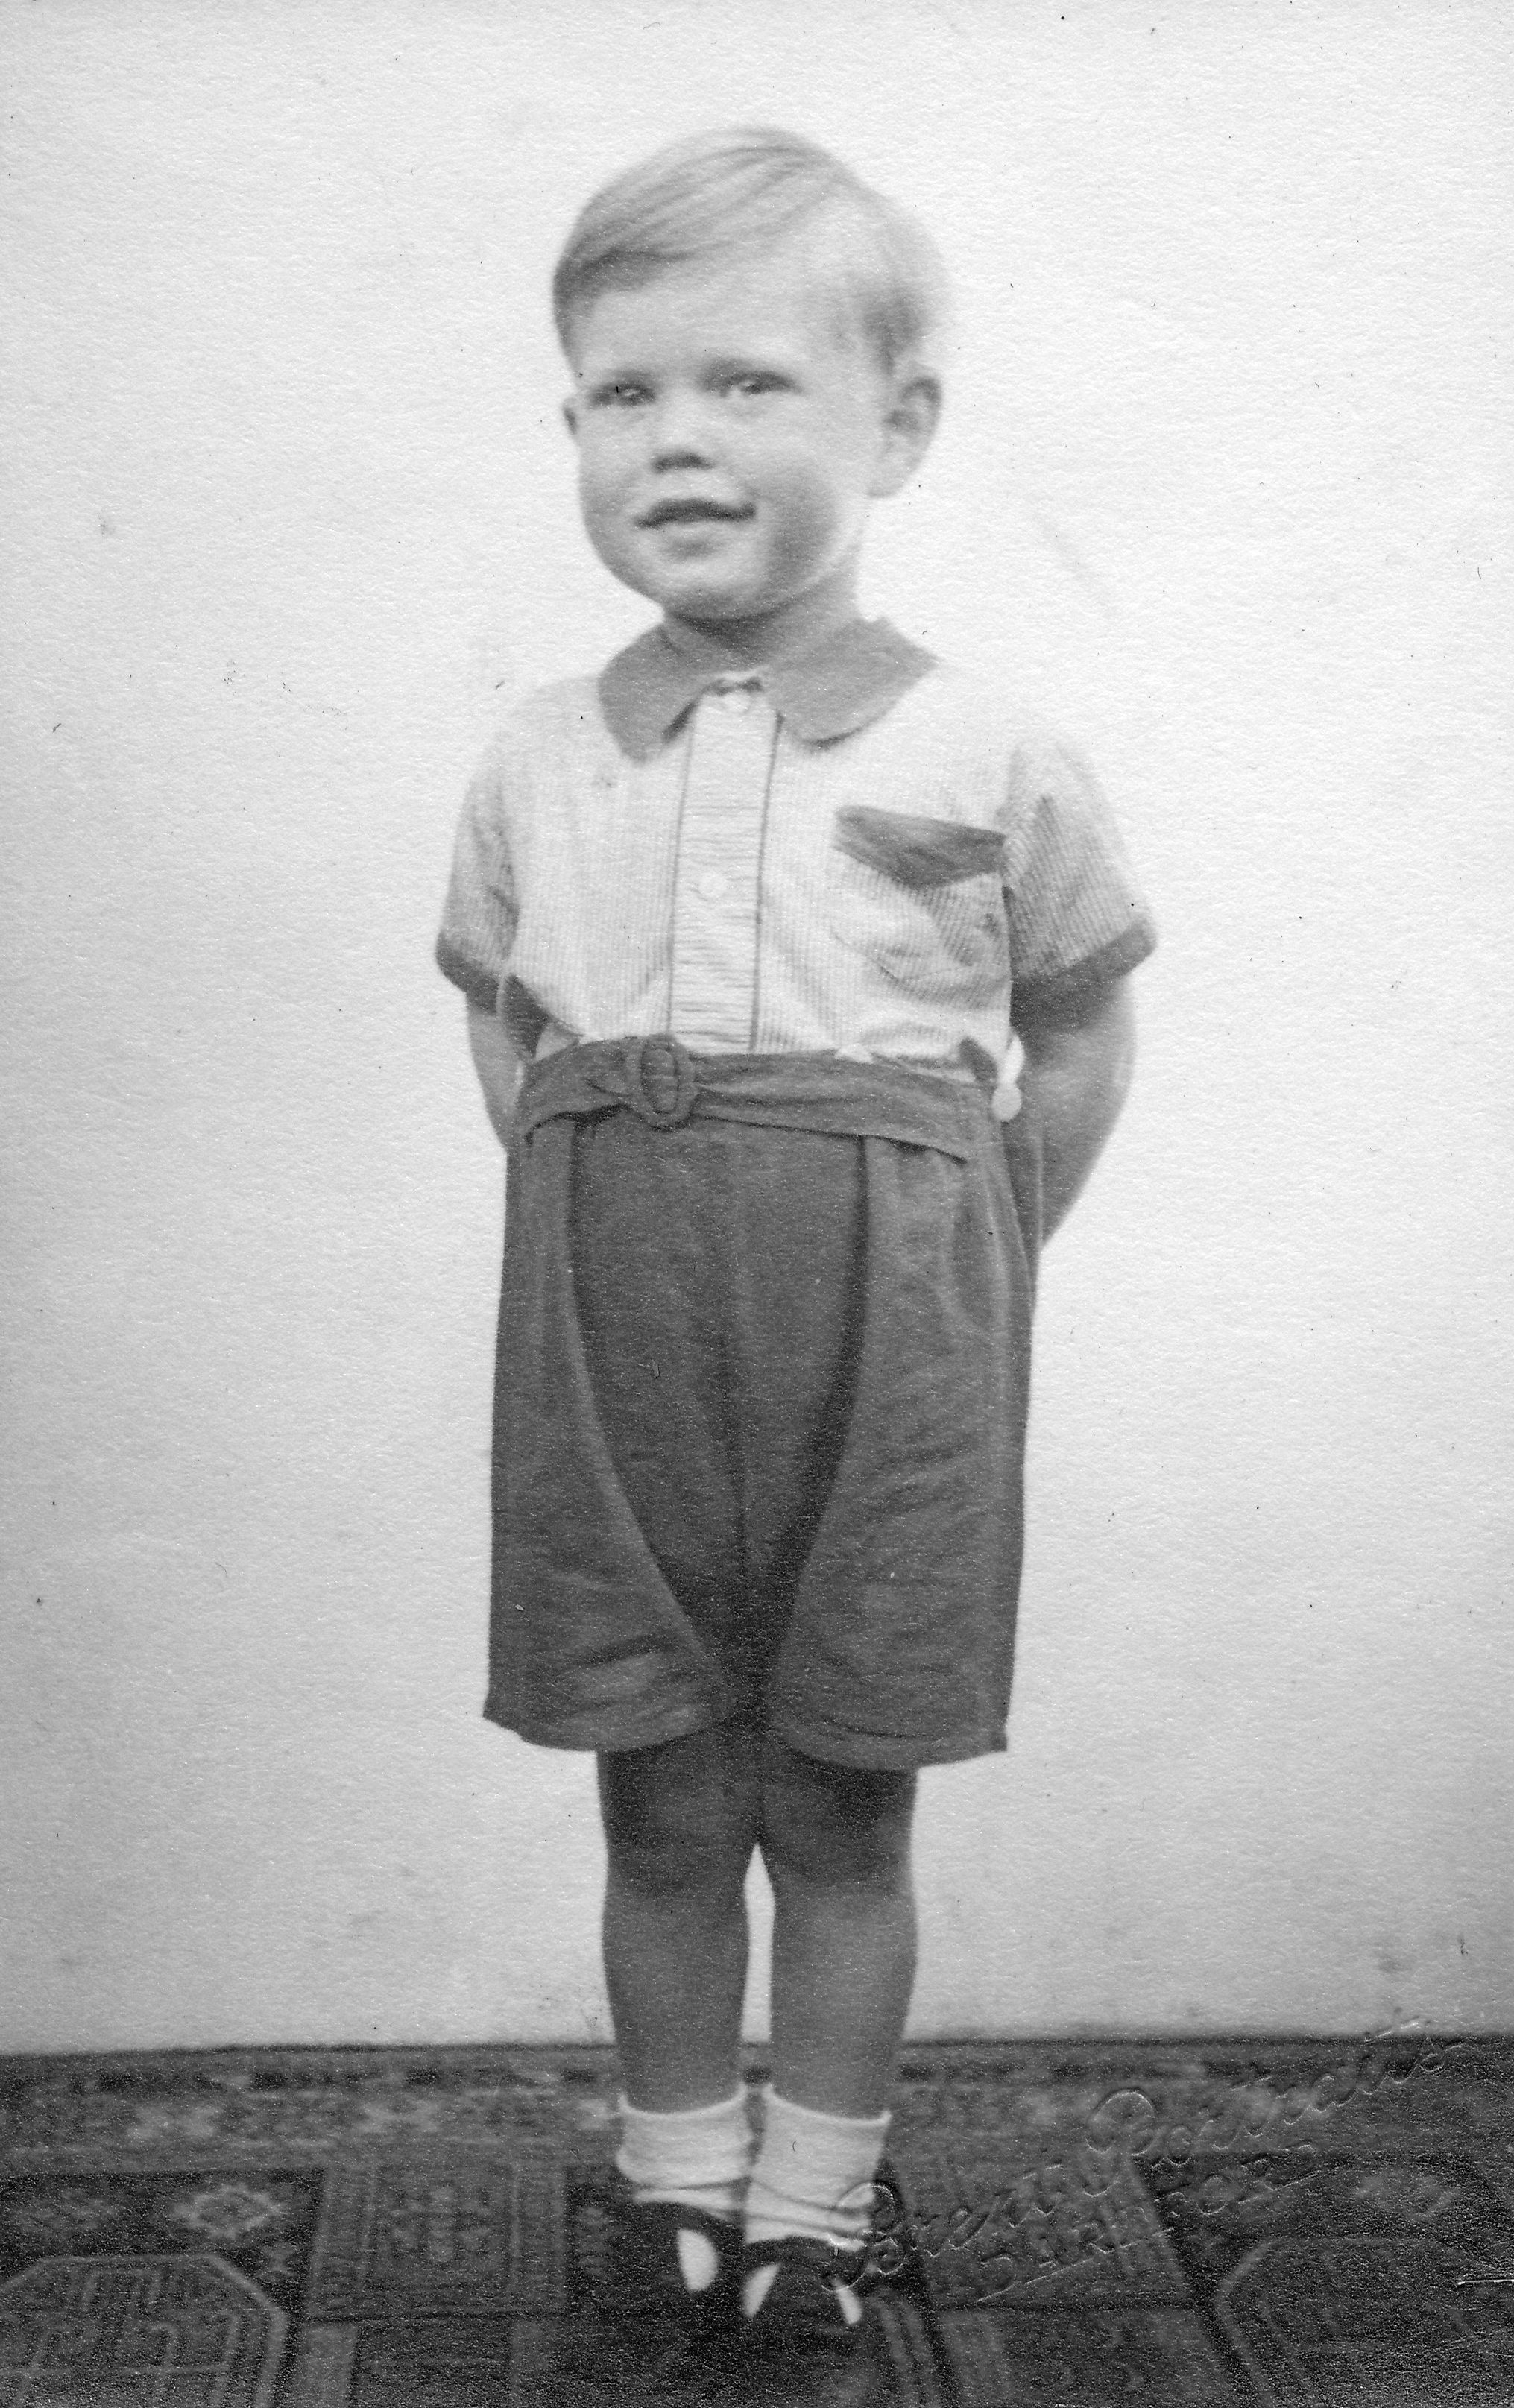 Mick Jagger (aged 3) looking smart at home in Brent Lane, Dartford (1946) on January 01, 1946   Photo: Getty Images